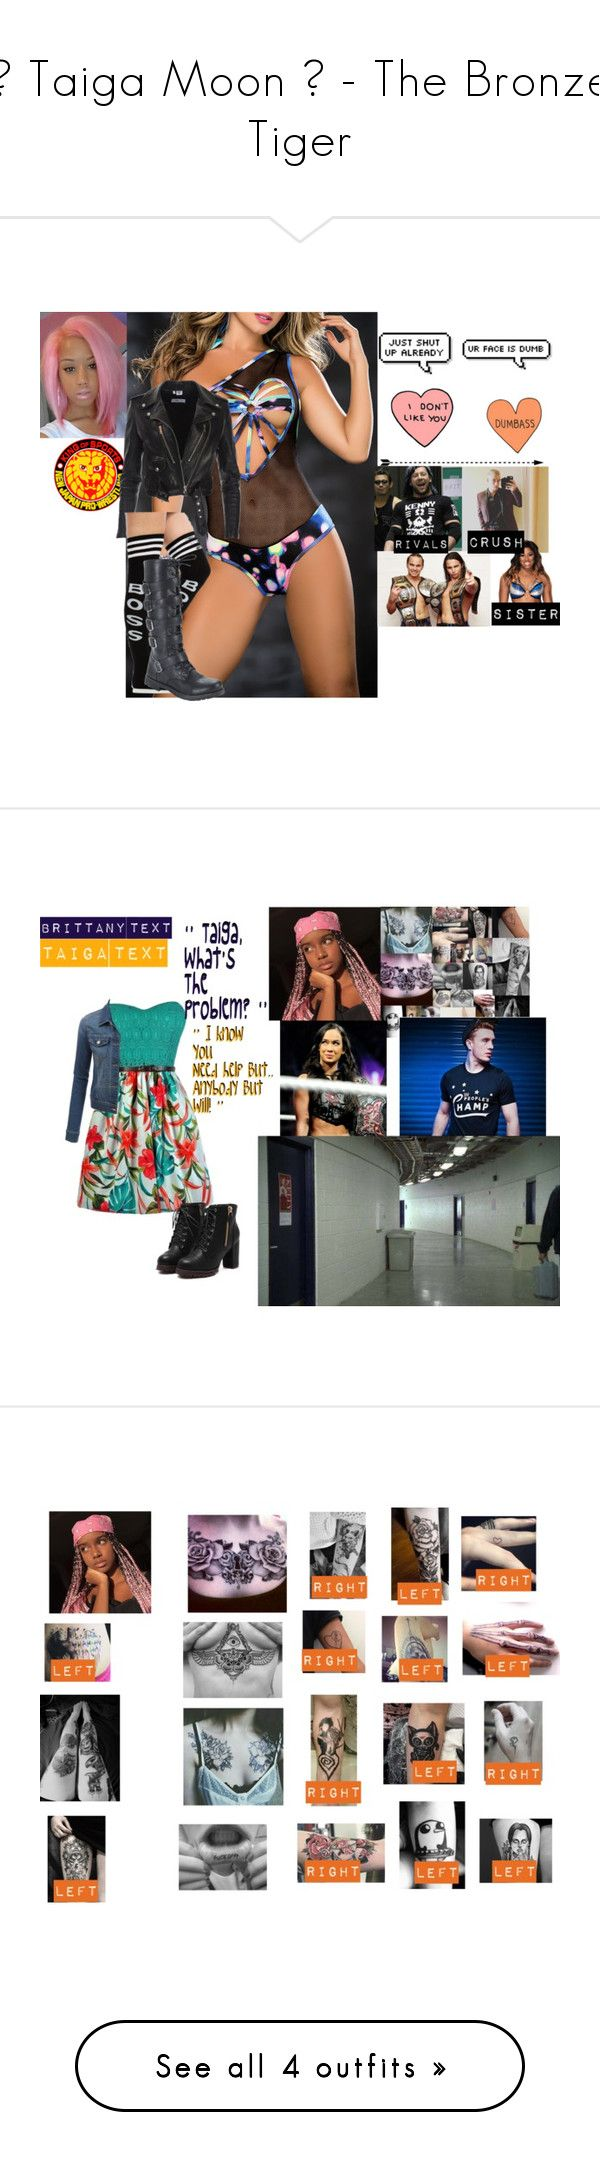 """🐯 Taiga Moon 🐯 - The Bronze Tiger"" by iron-maiden-amy ❤ liked on Polyvore featuring Mapalé, KENNY, WWE, Hot Topic, wweoc, wweattire, wweocattire, LE3NO, art and Dolce Vita"